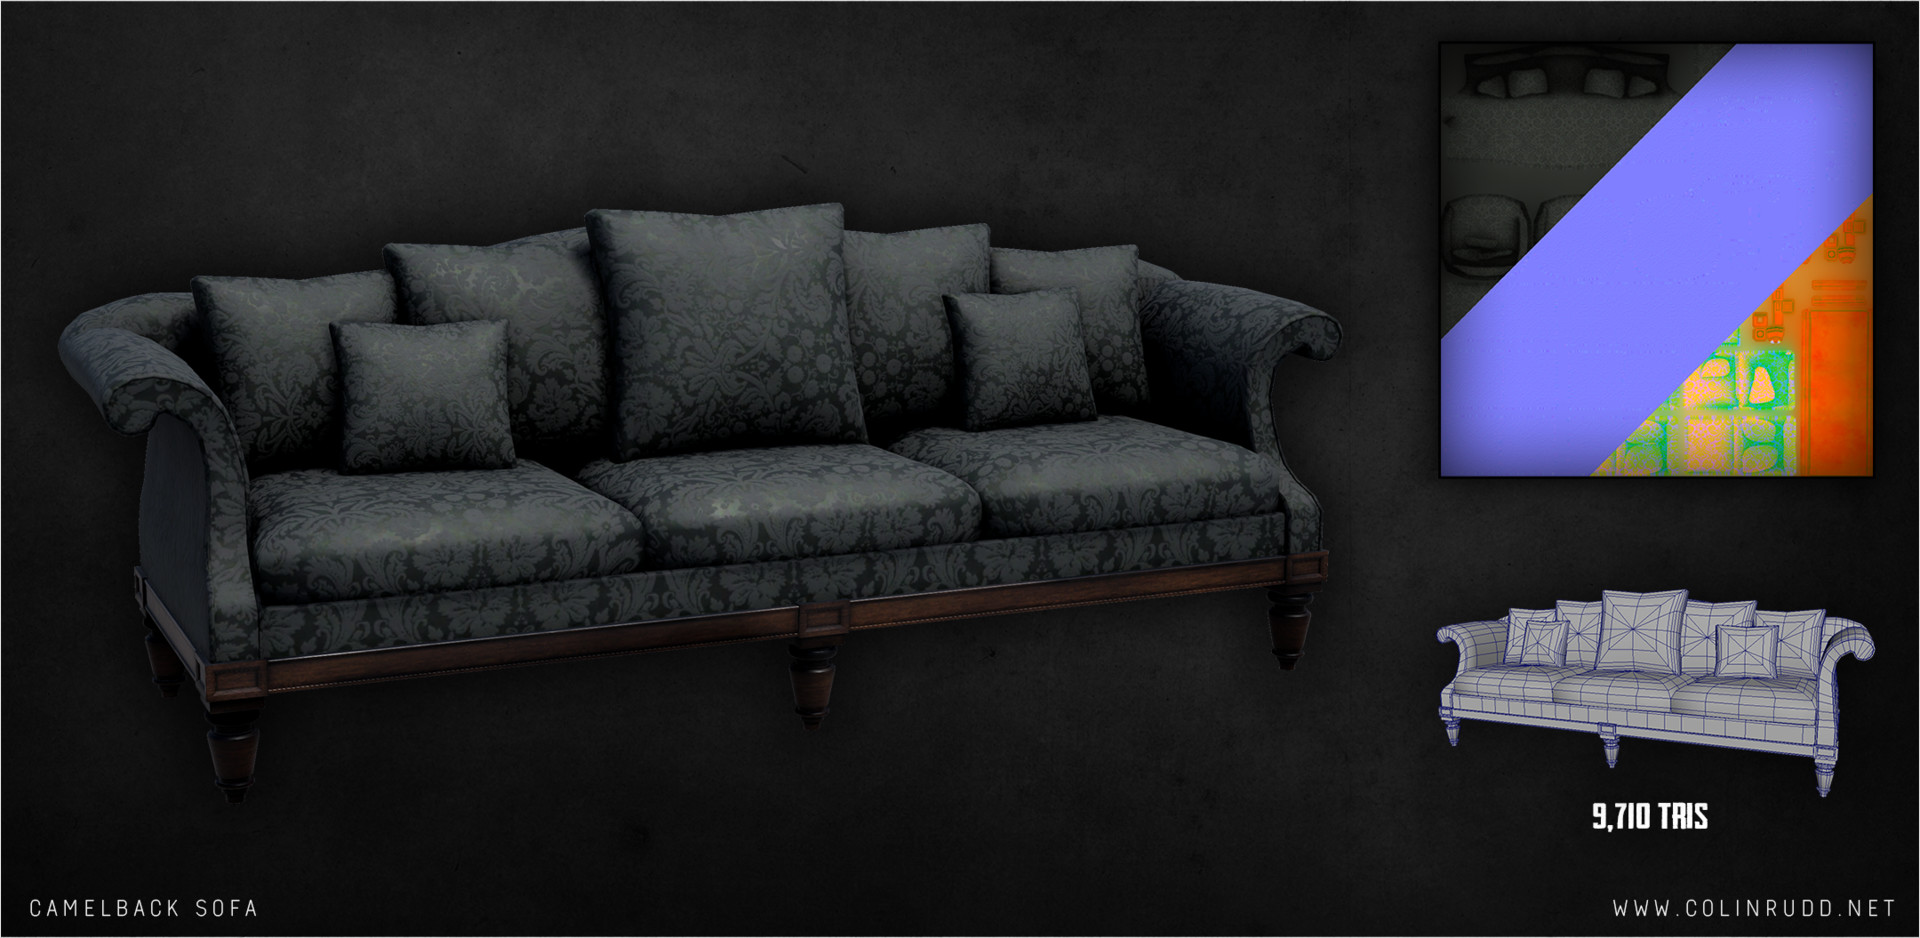 Colin rudd sofa